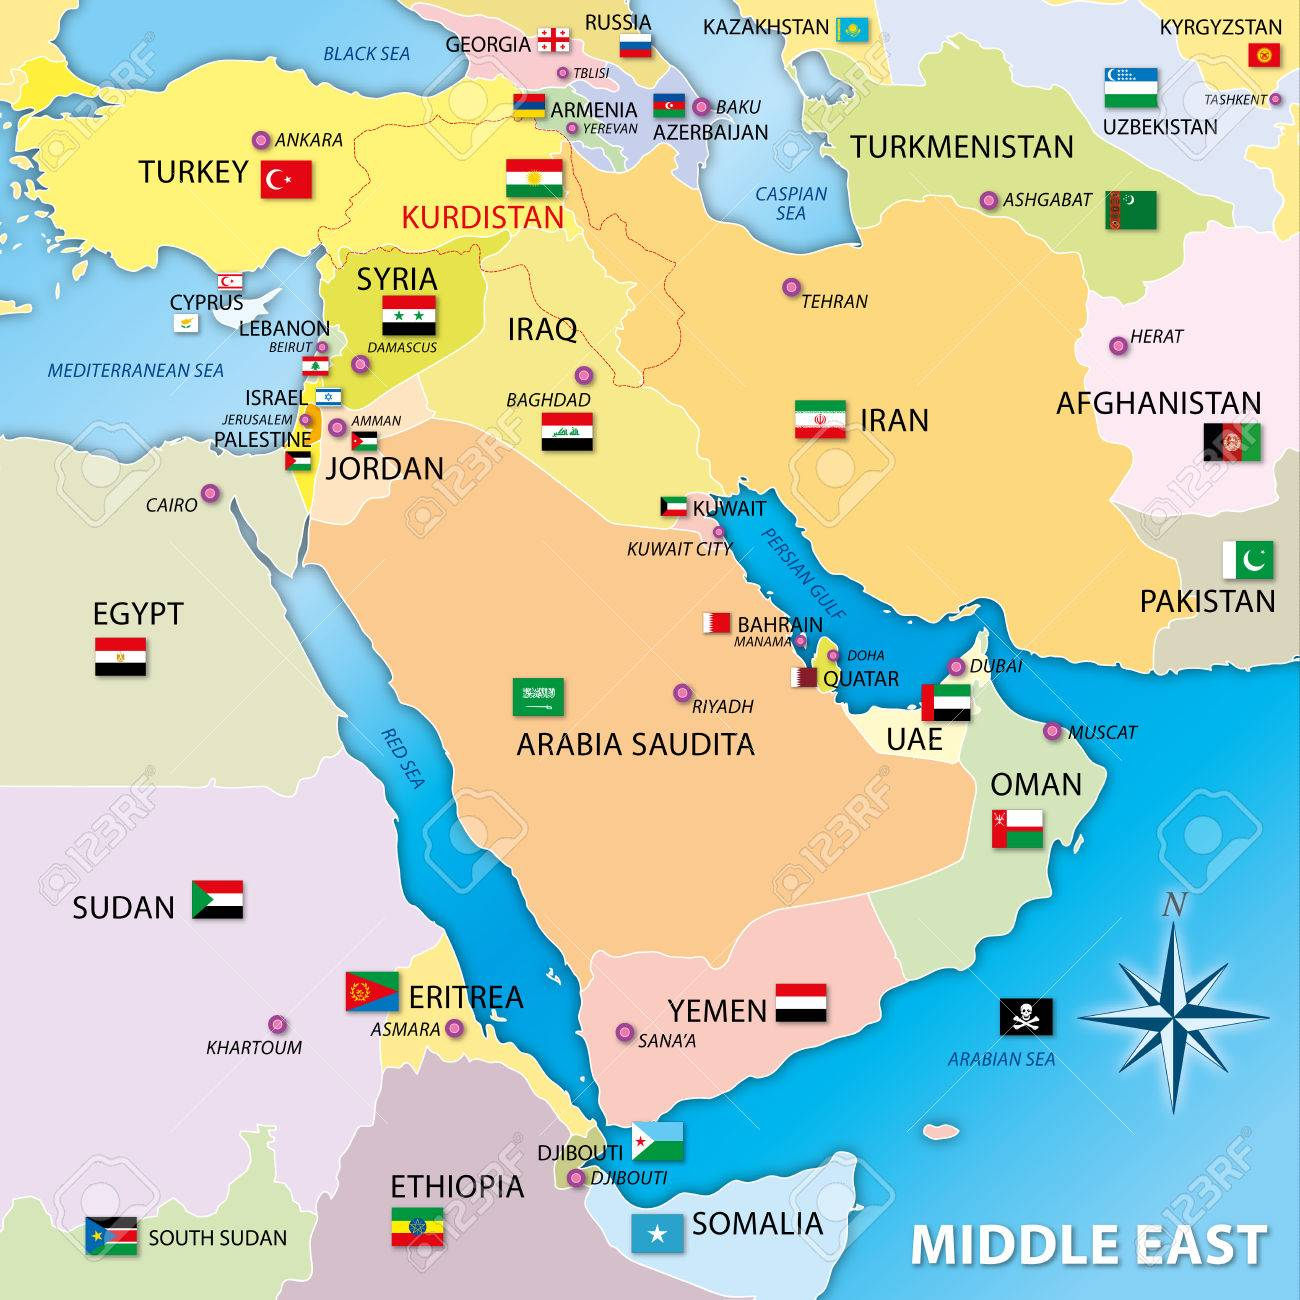 Middle East Map.Middle East Map With Flags Royalty Free Cliparts Vectors And Stock